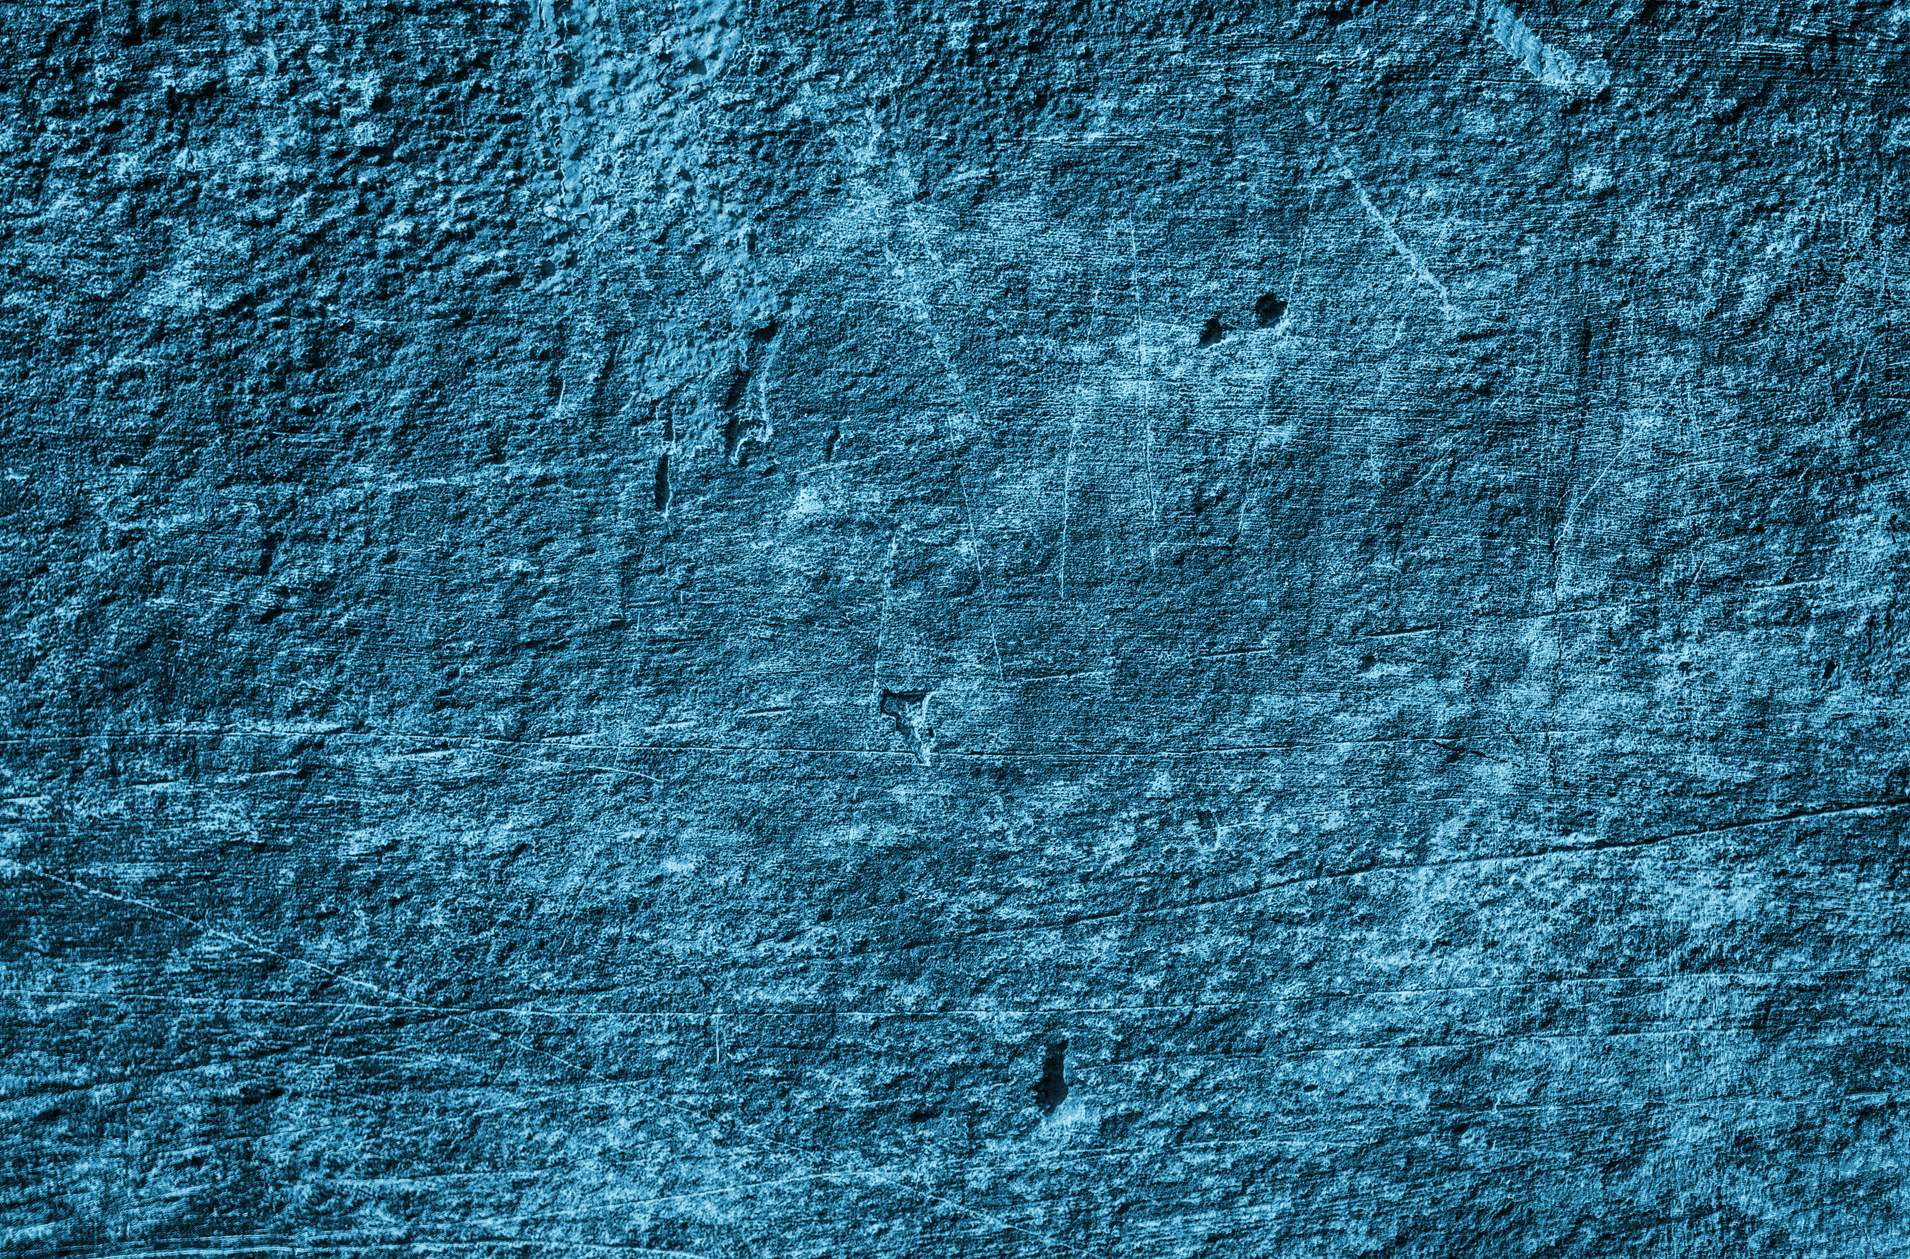 Dark blue grungy wall texture photohdx for Dark blue wallpaper for walls